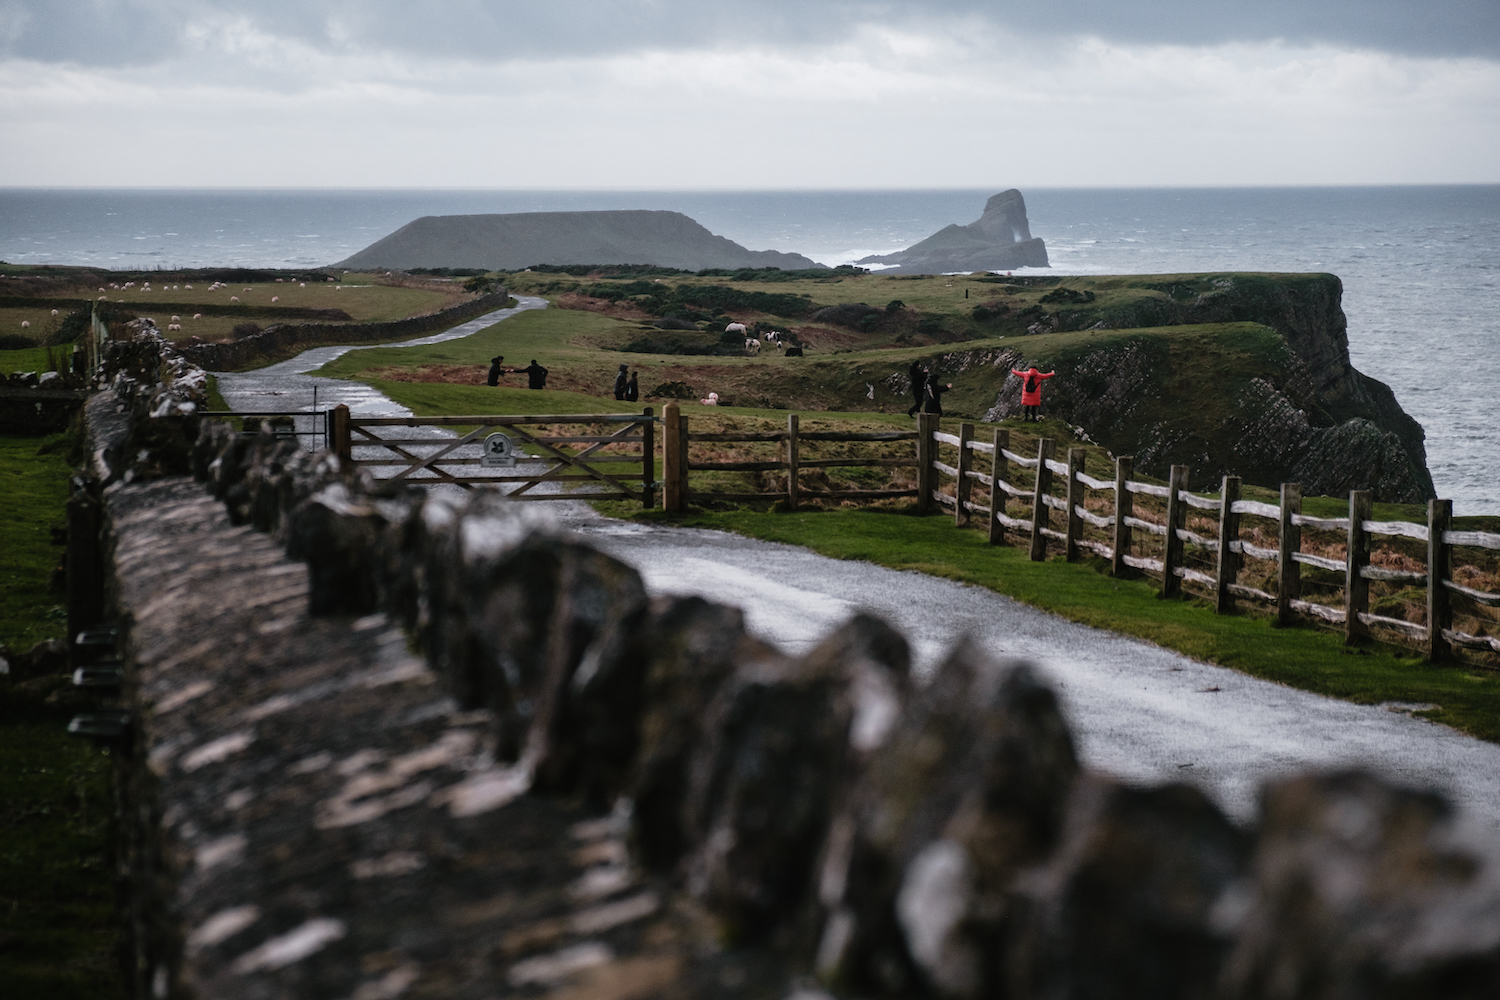 Rhossili Wales, UK - Travel Photography by Ben Holbrook from DriftwoodJournals.com-7447